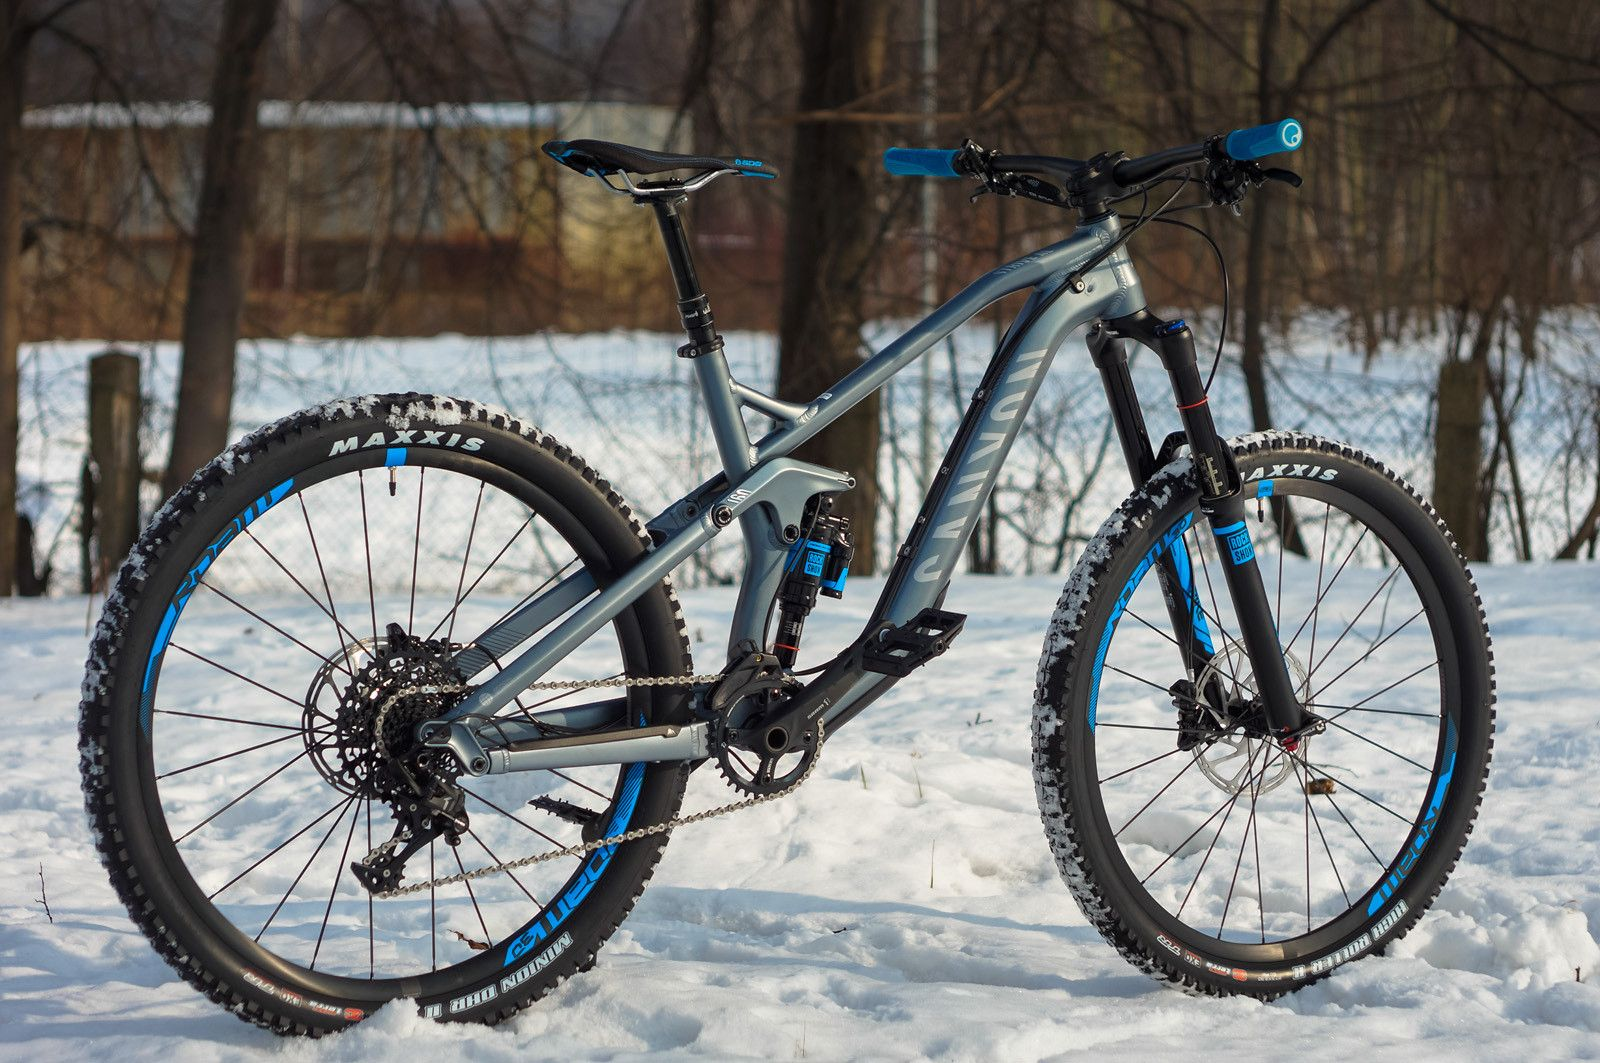 Canyon Strive Al 6.0 Race | Bike | Pinterest